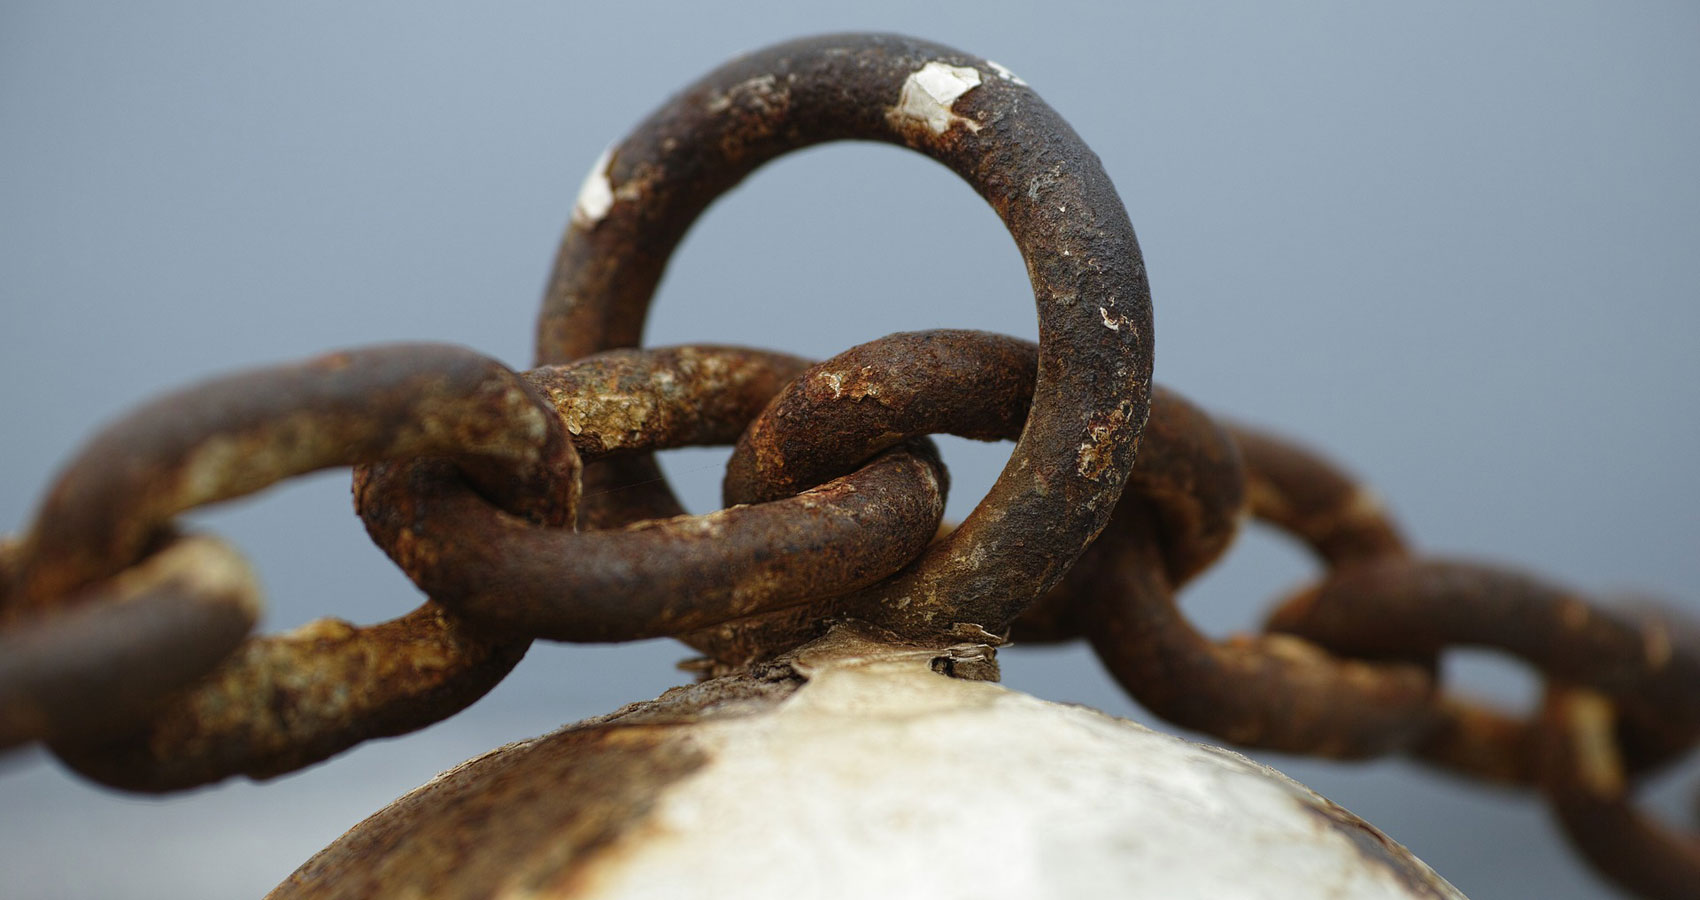 Chain Gang, poetry written by Steve Green at Spillwords.com